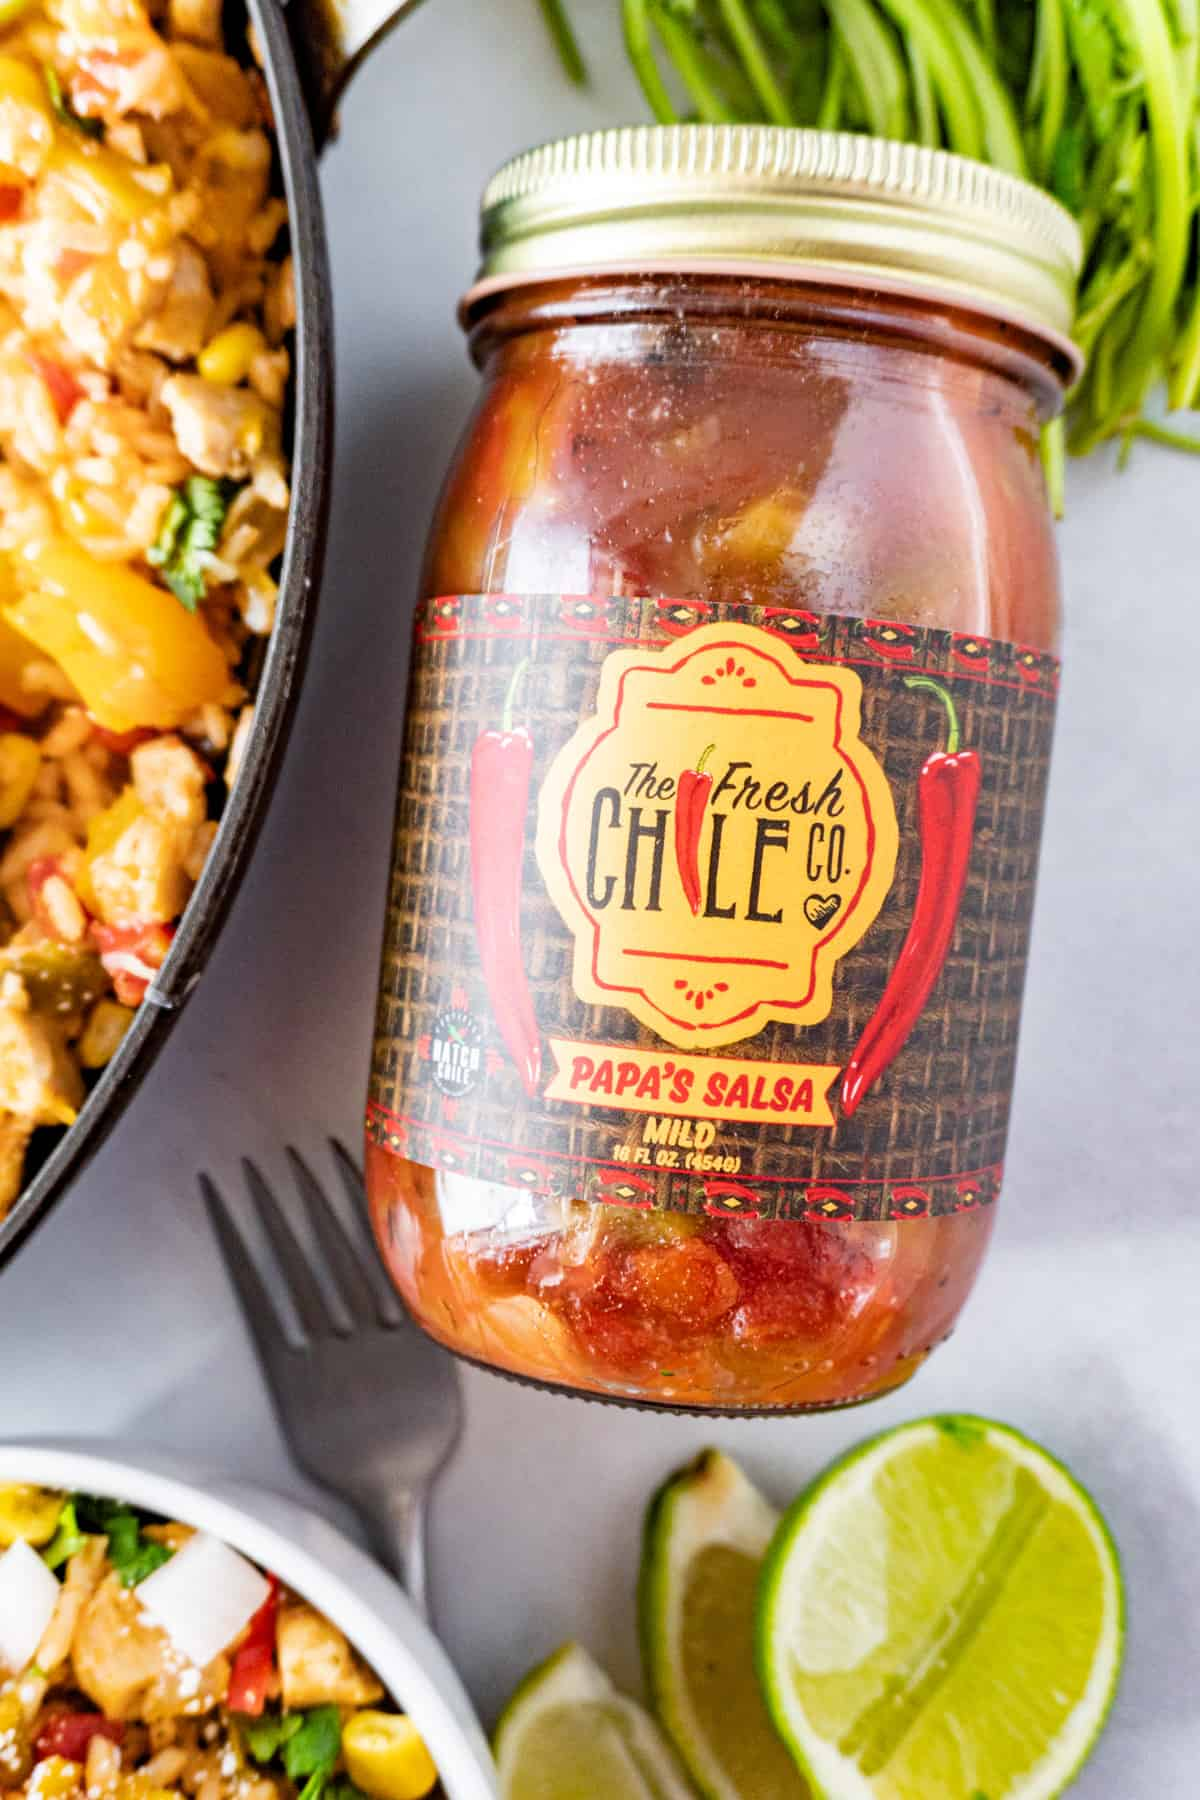 Papa's Salsa from Fresh Chile Co Jar